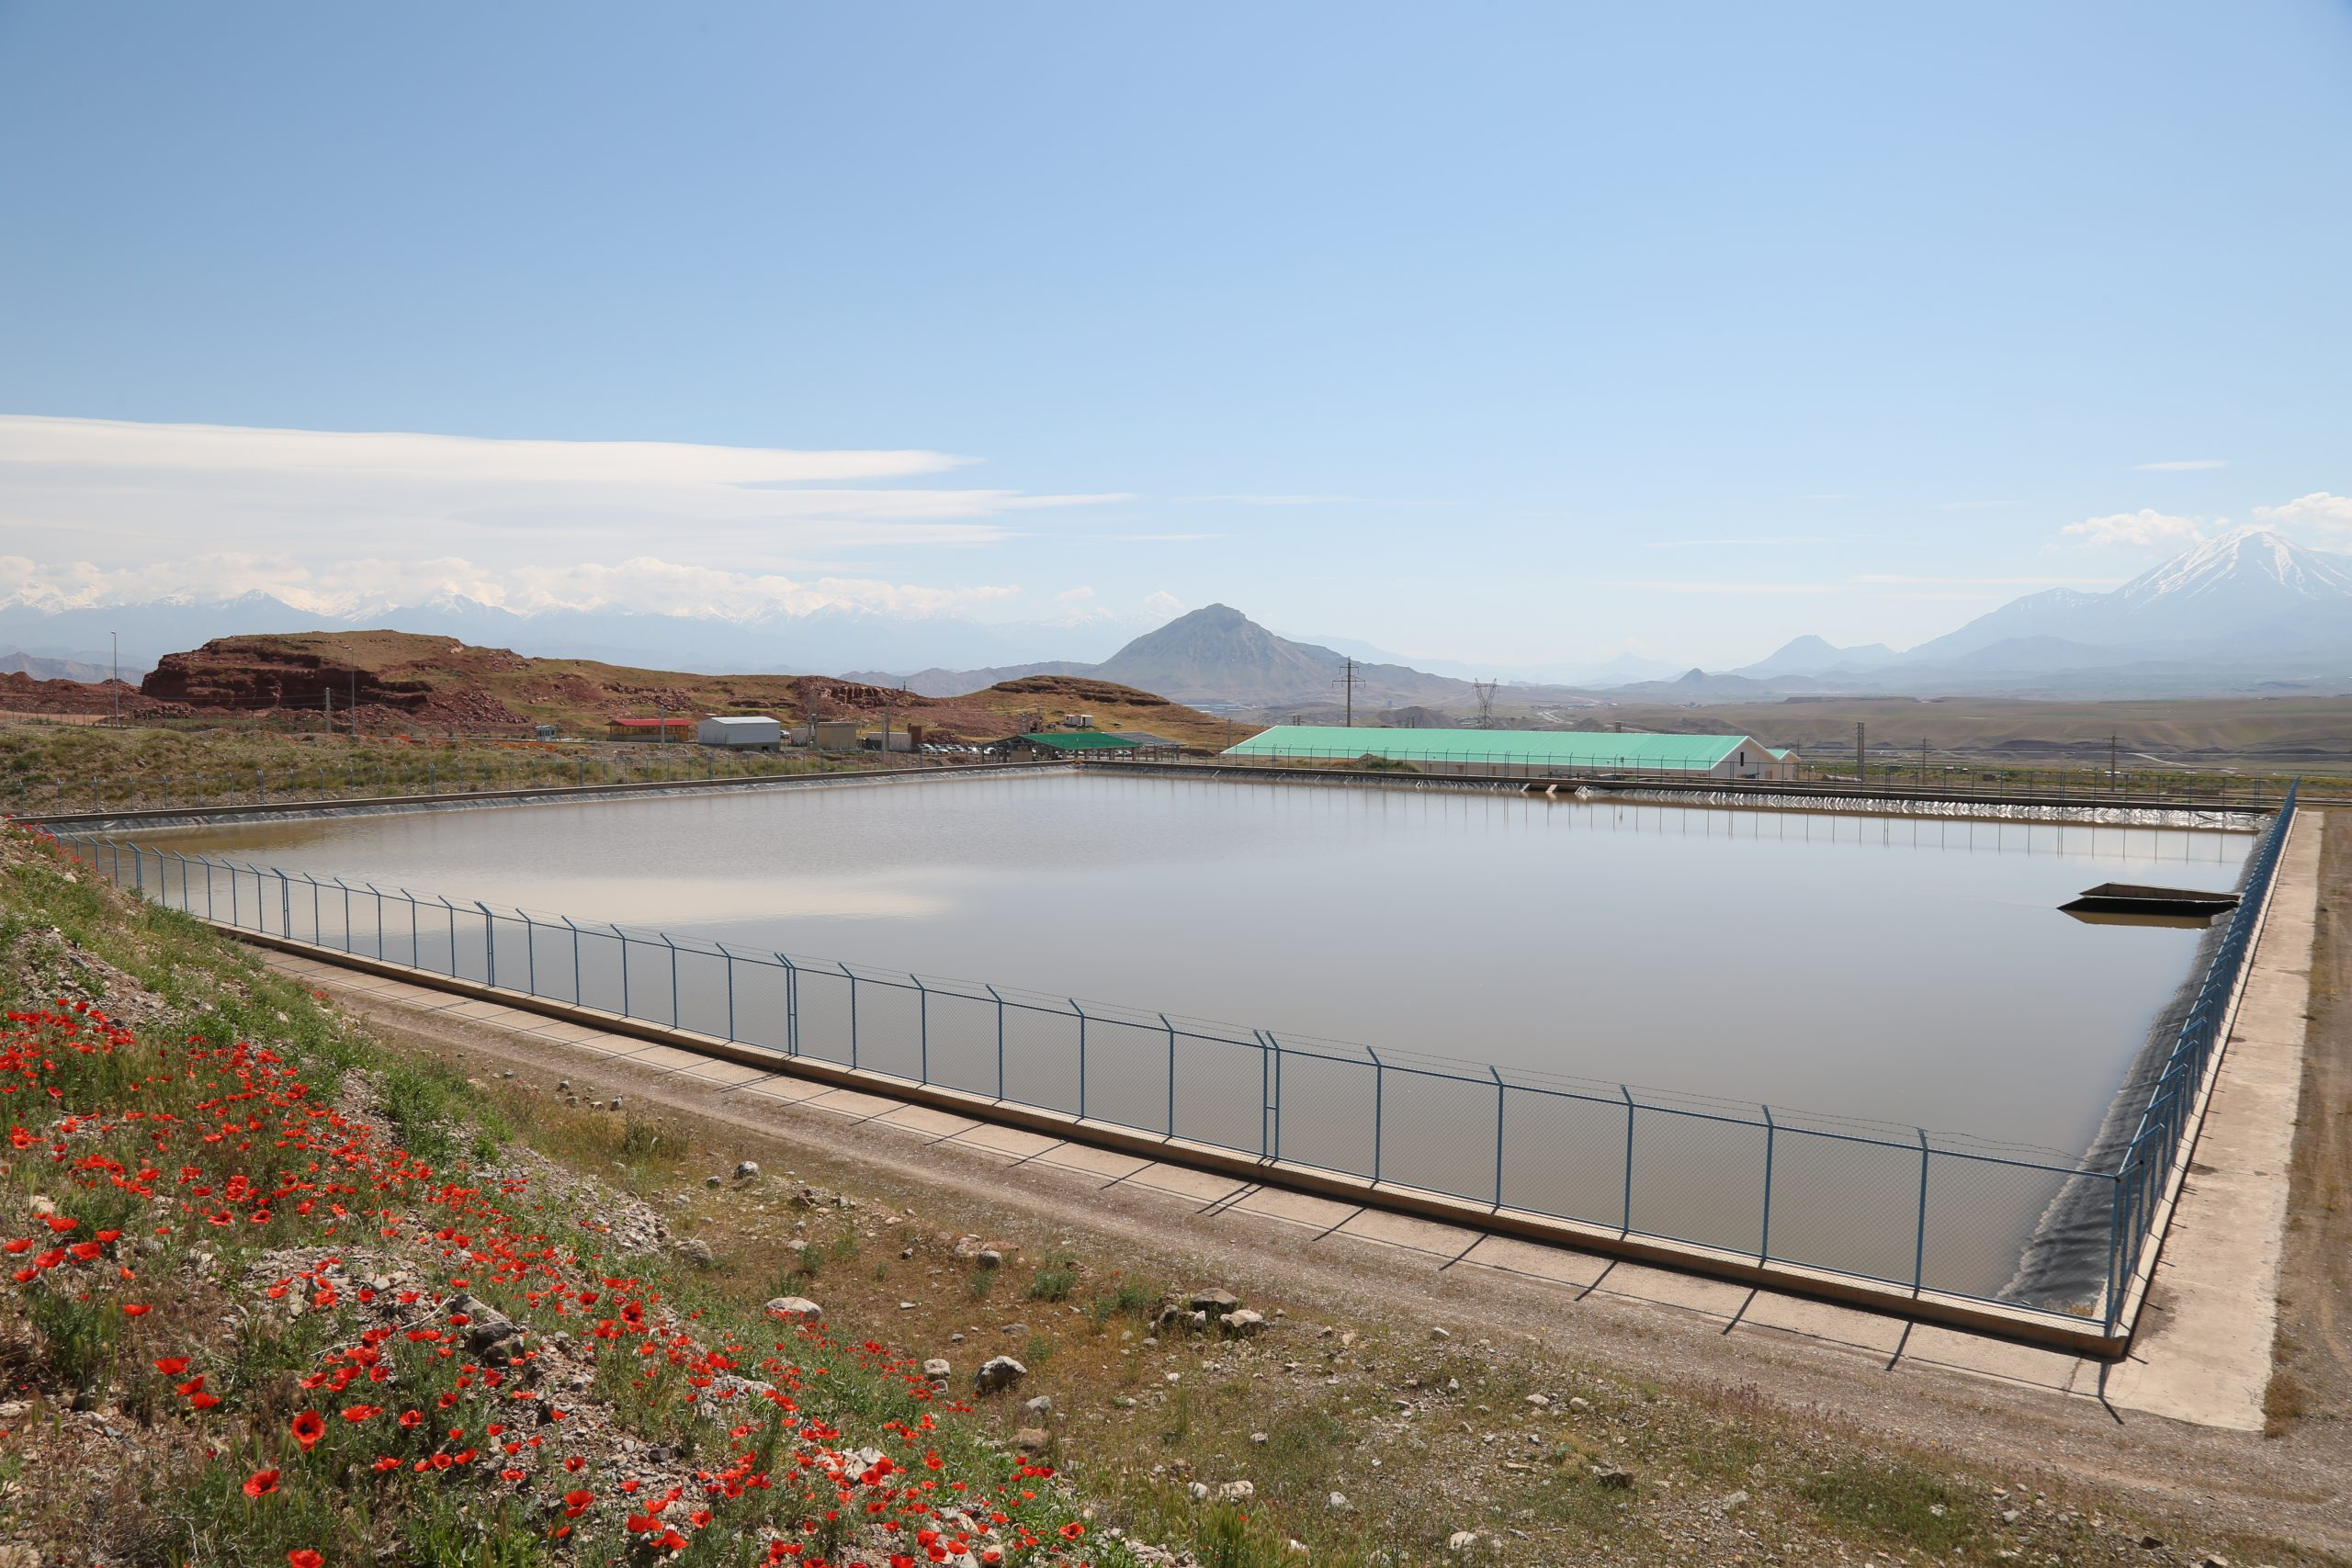 Hashtjin city Water supply program (master, amendment and supplementary contracts)